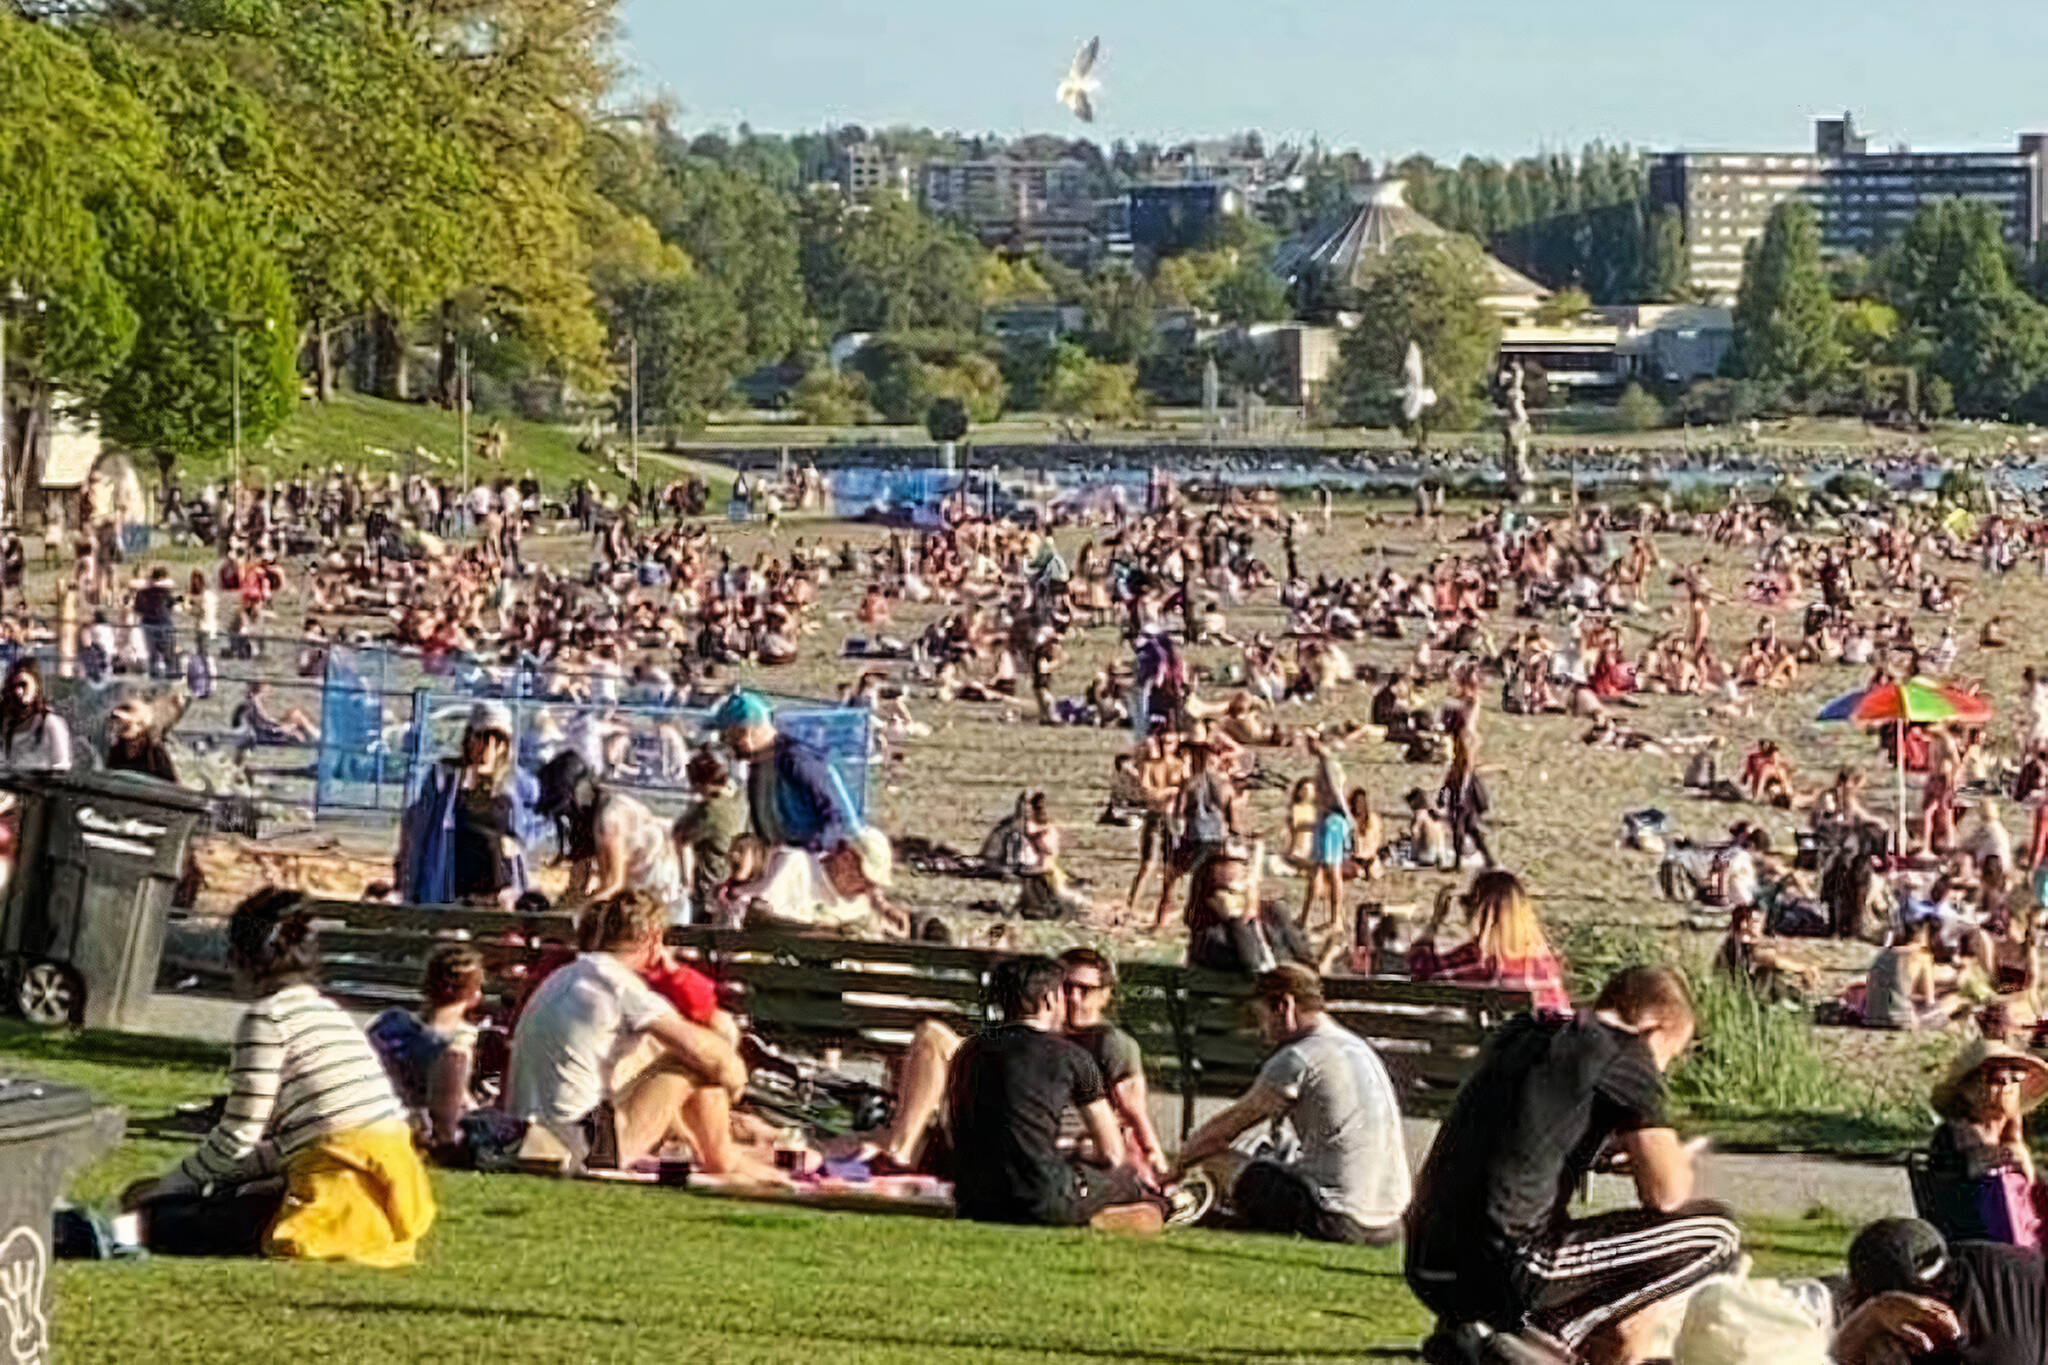 vancouver beaches packed